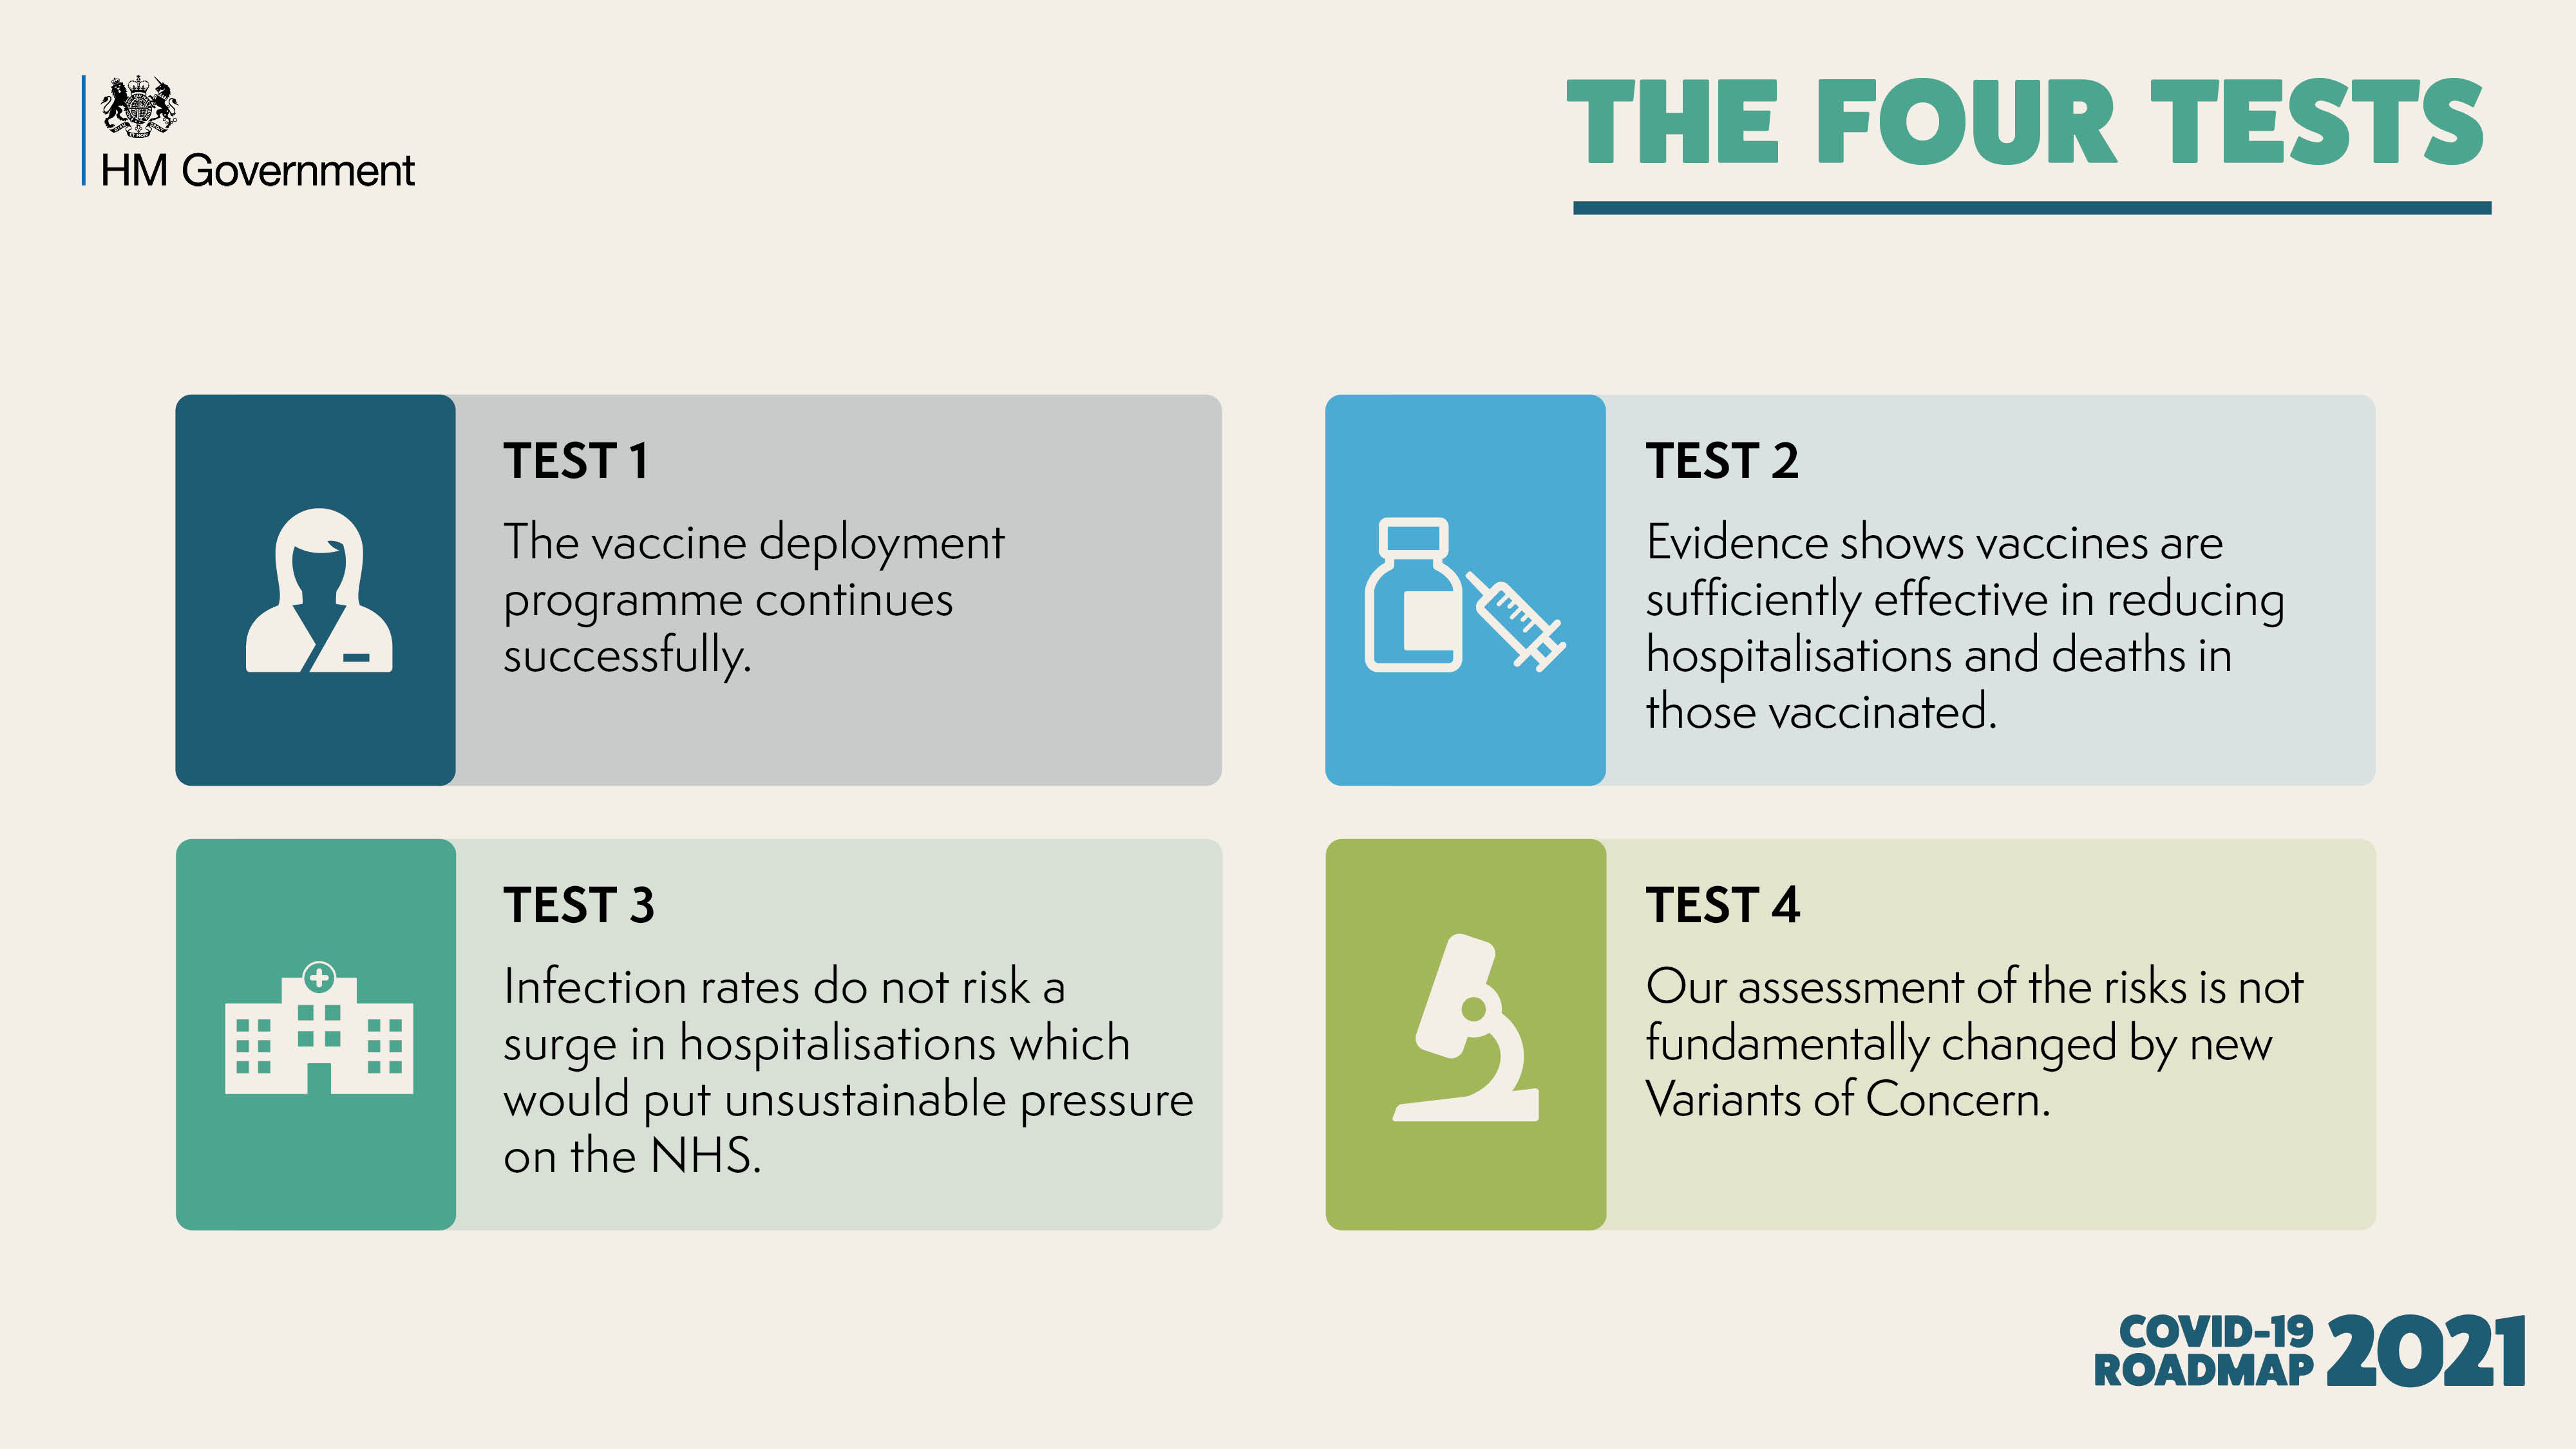 The Four Tests: Test 1, The vaccine deployment programme continues successfully. Test 2, Evidence shows vaccines are sufficiently effective in reducing hospitalisations and deaths in those vaccinated. Test 3 Infection rates do not risk a surge in hospitalisations which would put unsustainable pressure on the NHS. Test 4 Our assessment of the risks is not fundamentally changed by new Variants of Concern.